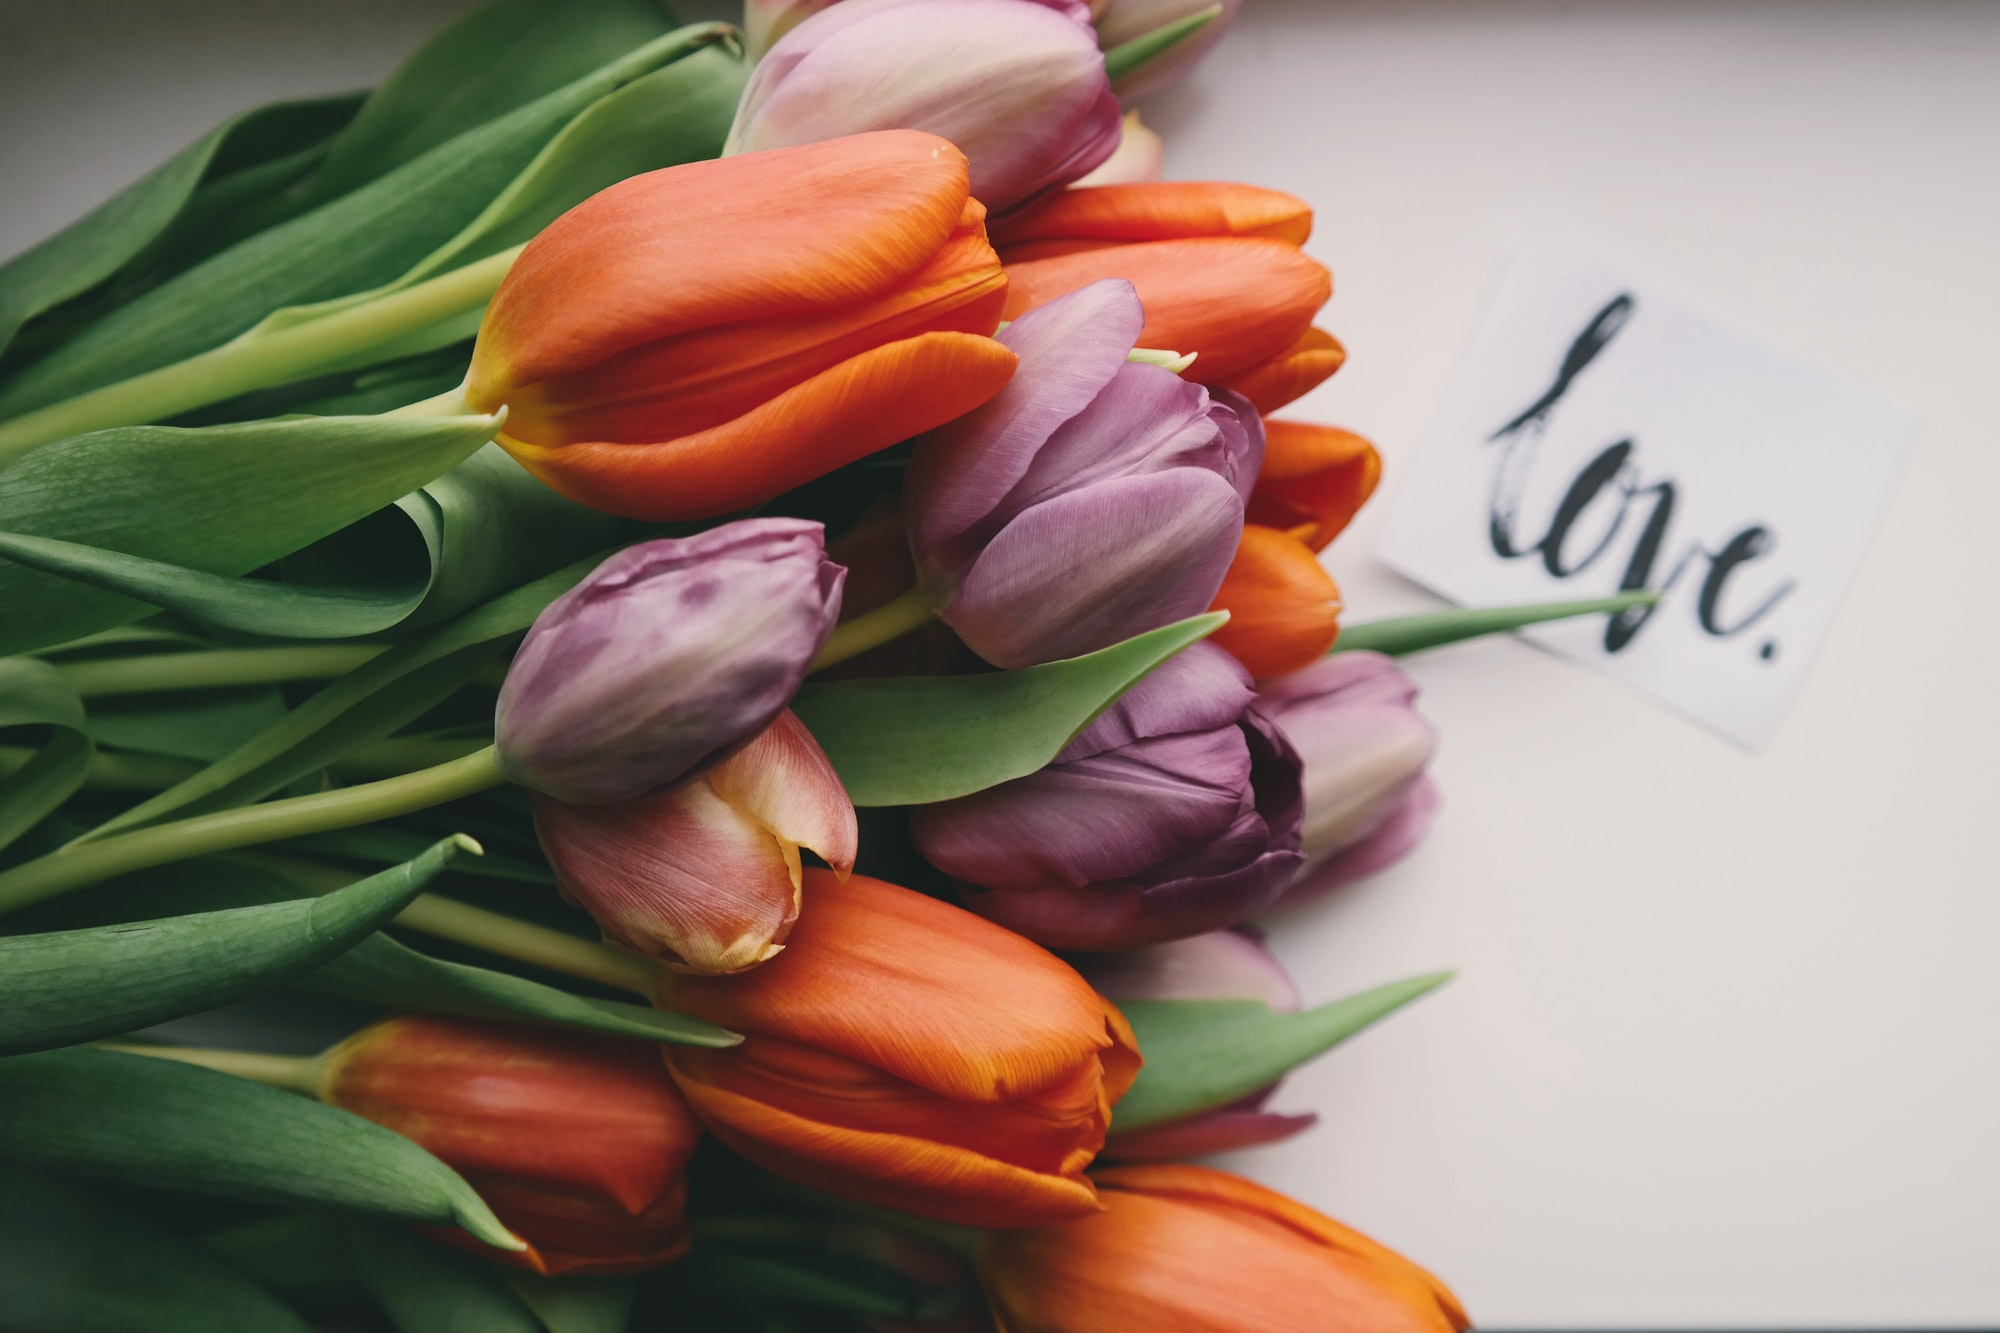 Tulips from a lover